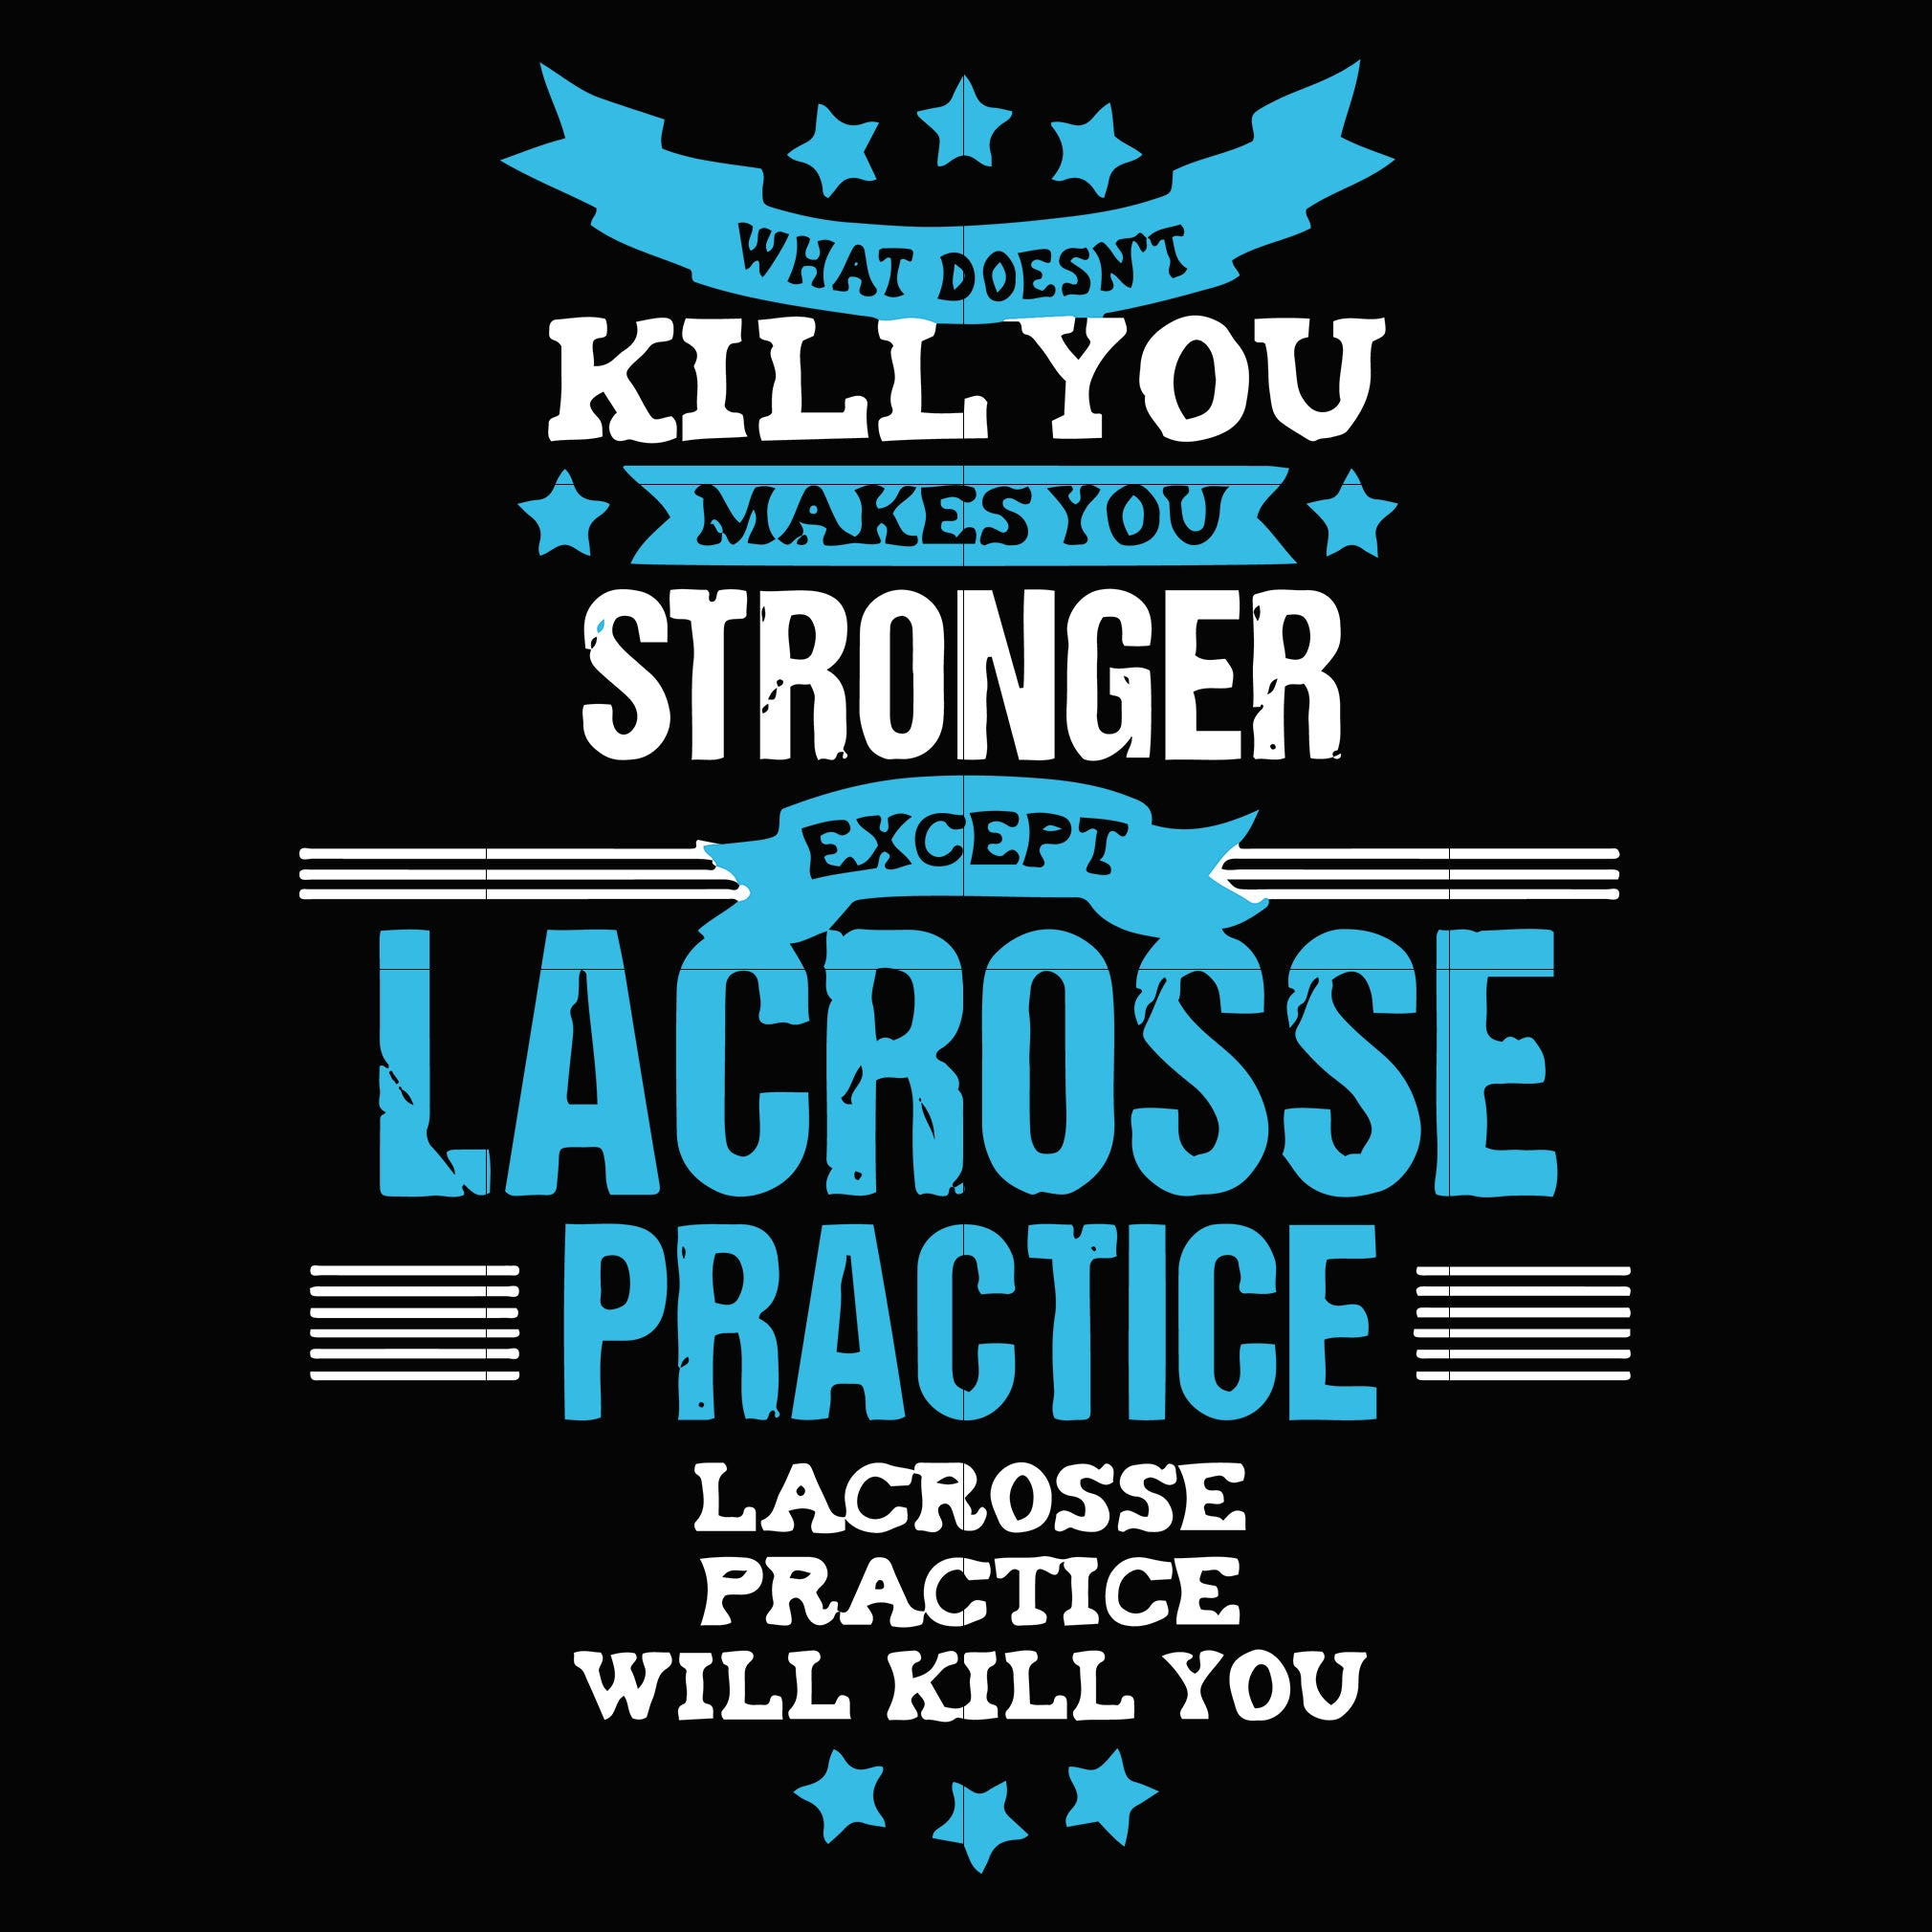 What doesn't makes you stronger except lacrosse practice lacrosse practice will kill you svg ,dxf,eps,png digital file